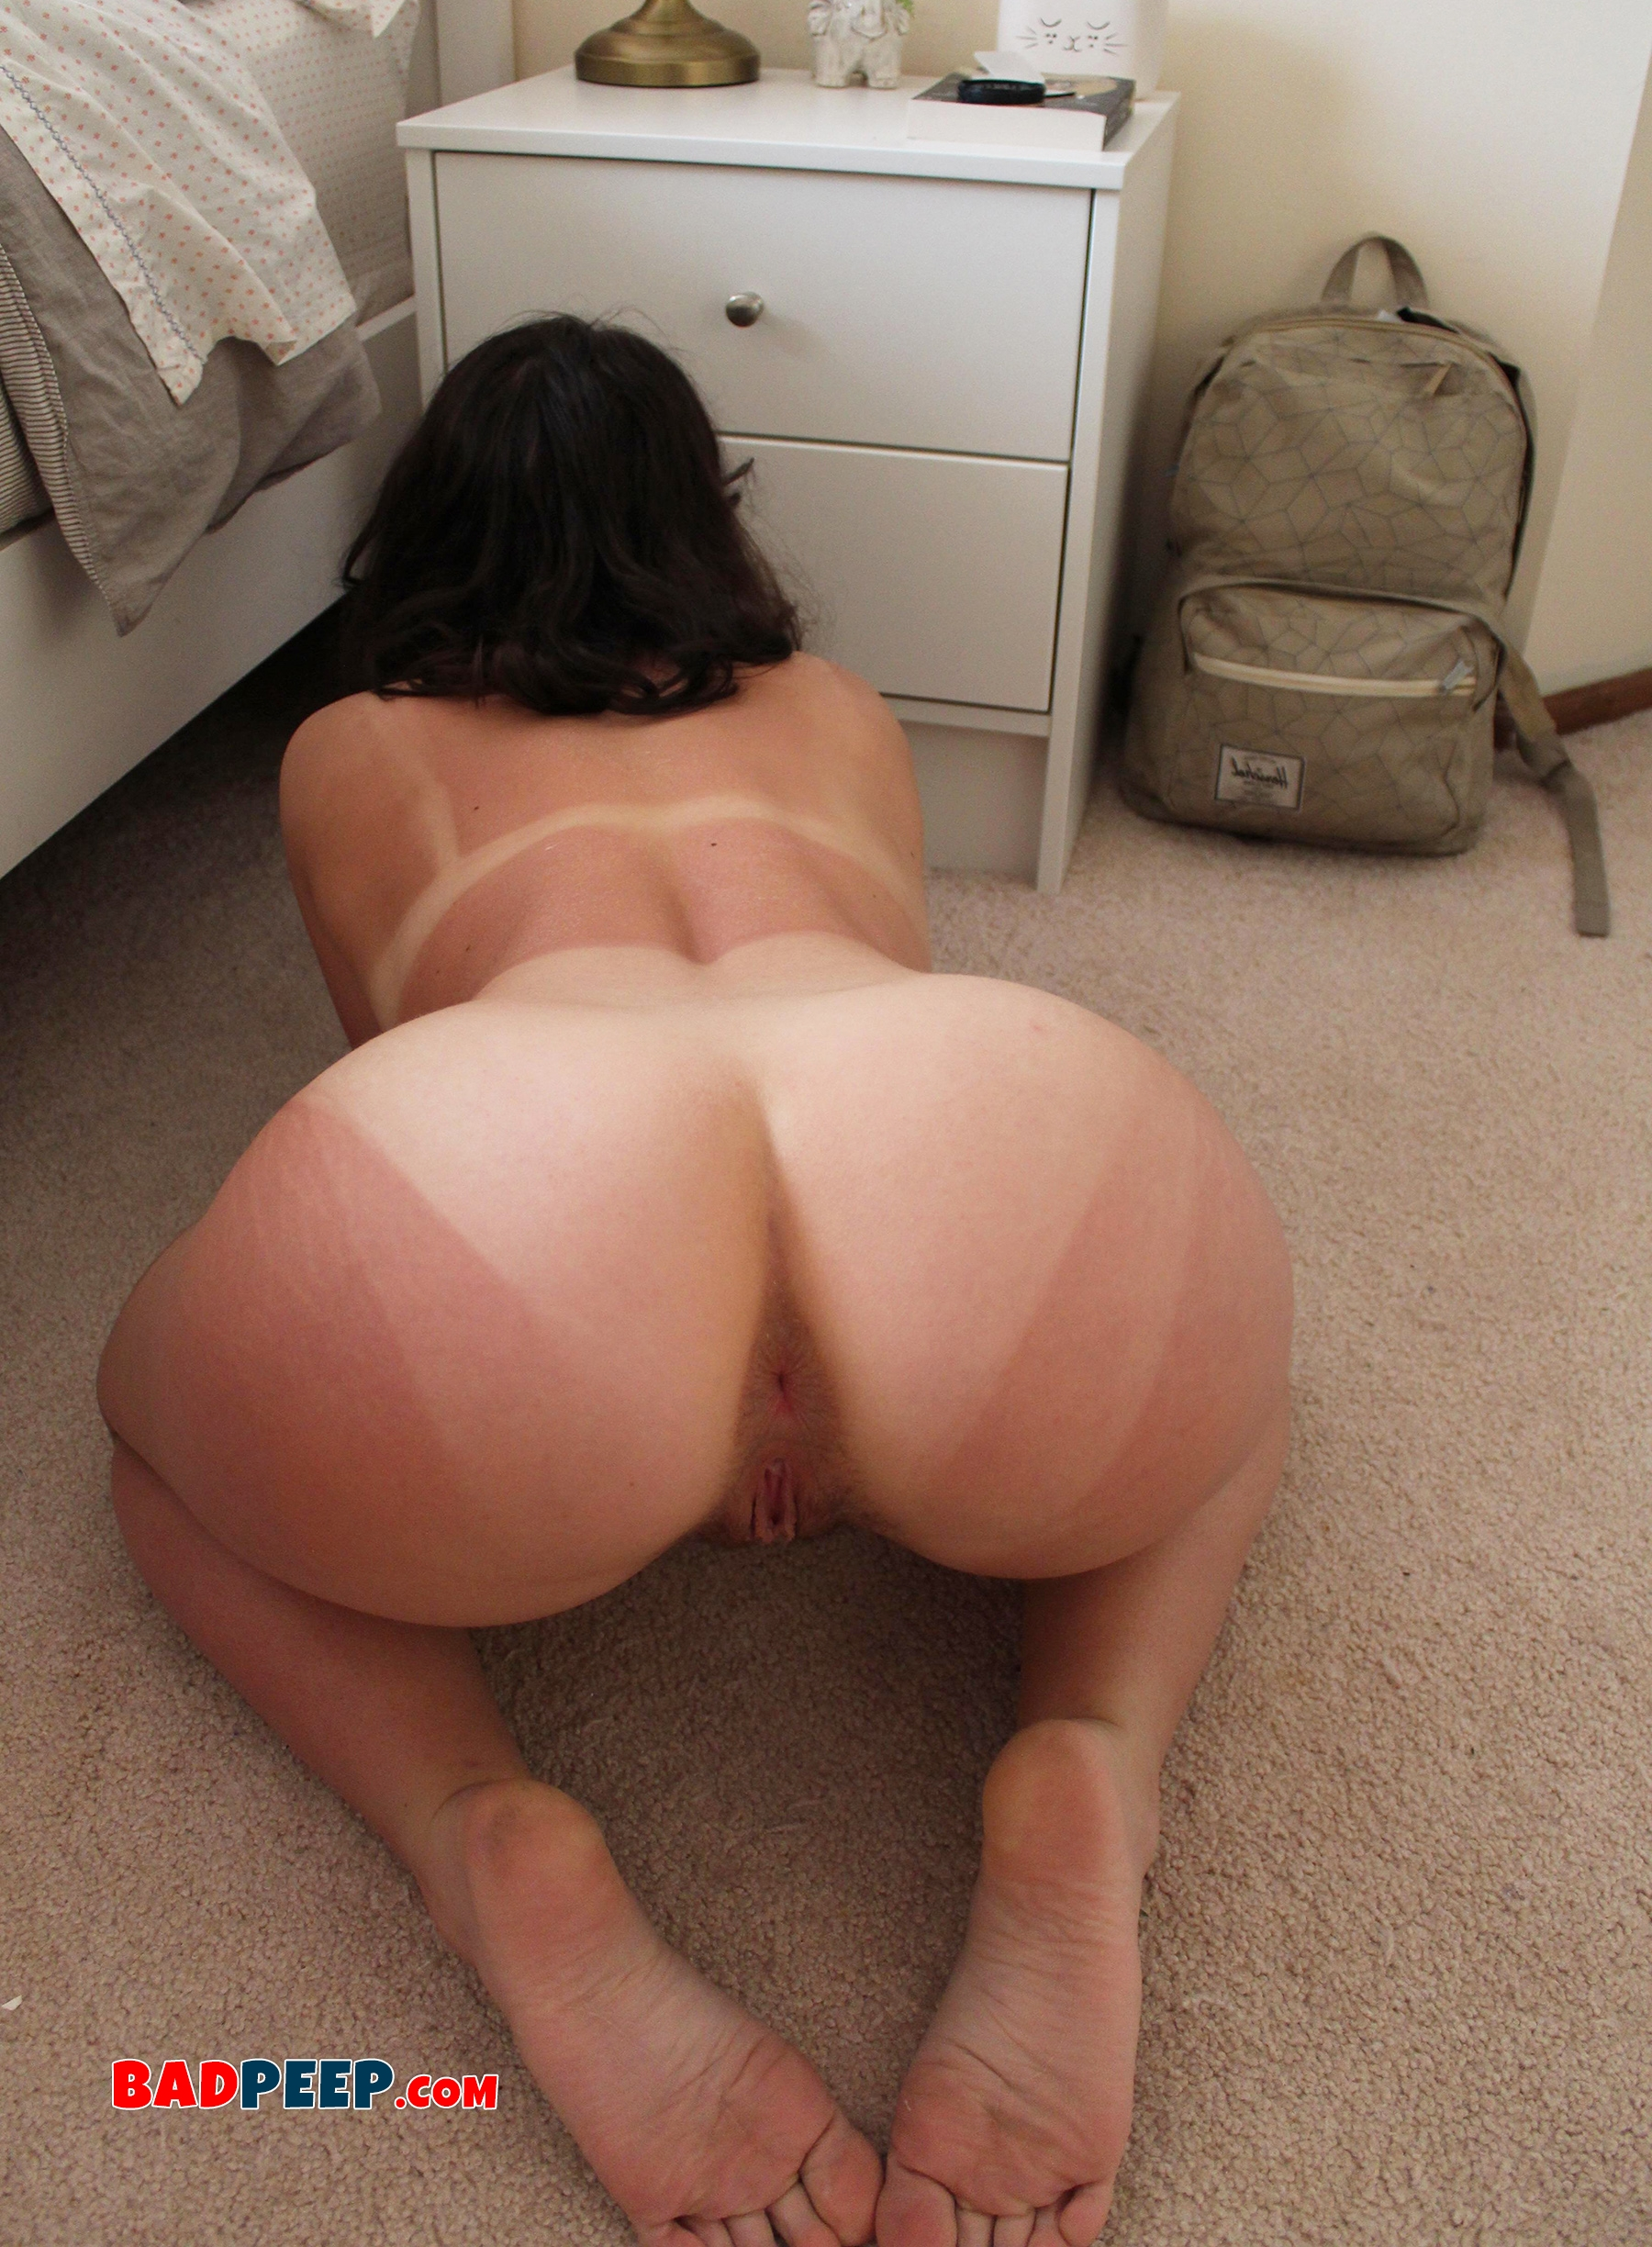 Ass doggy style Old Women